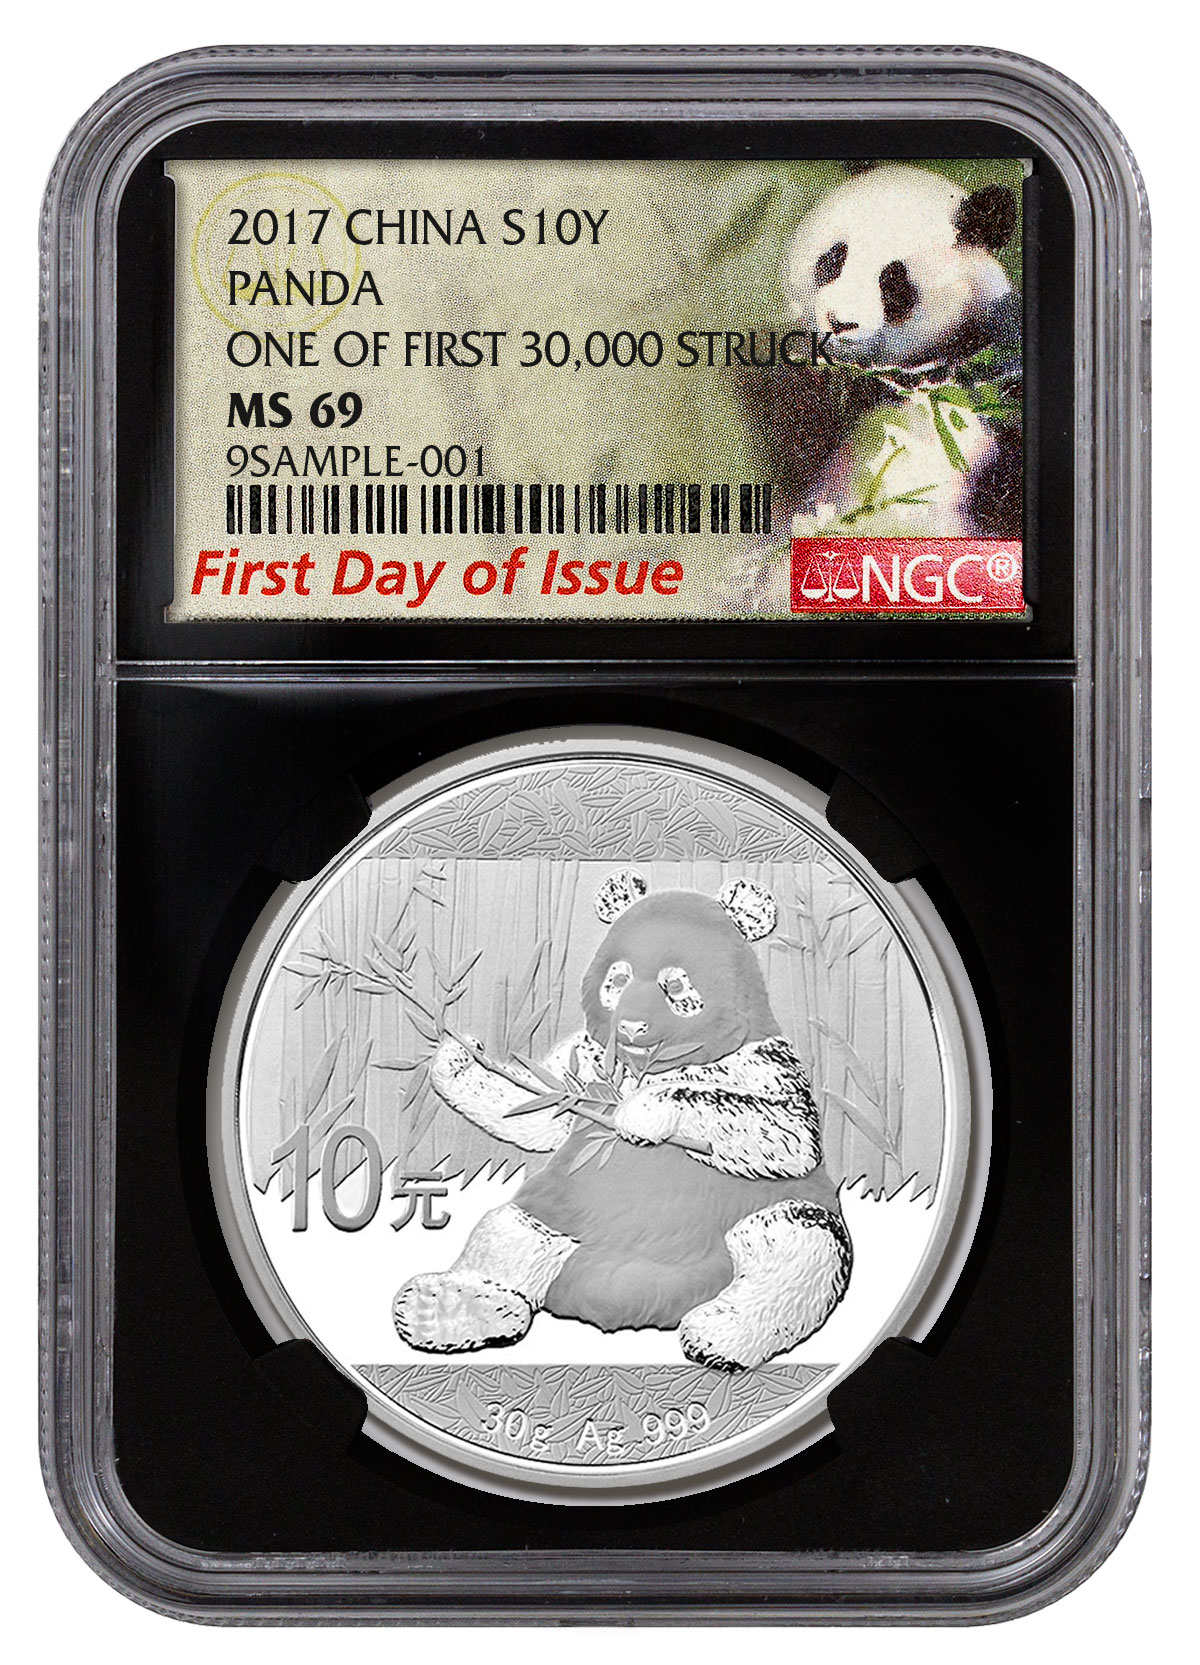 2017 China 30 g Silver Panda ¥10 Coin One of First 30,000 Struck NGC MS69 FDI (Red Core Holder Exclusive Panda Label)